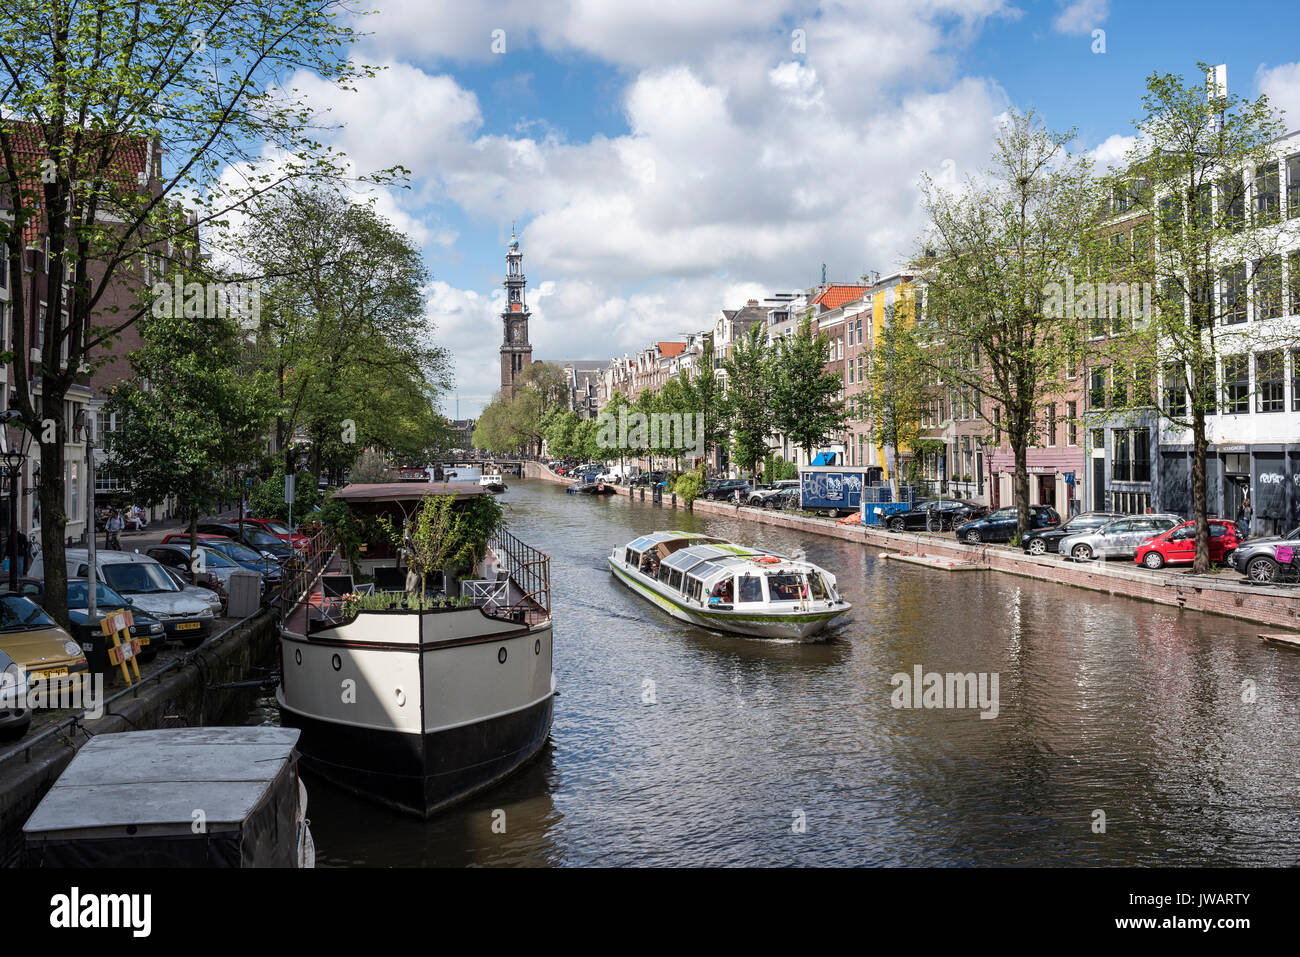 The Prinsengracht with the Westerkerk, Amsterdam, North Holland, Netherlands - Stock Image